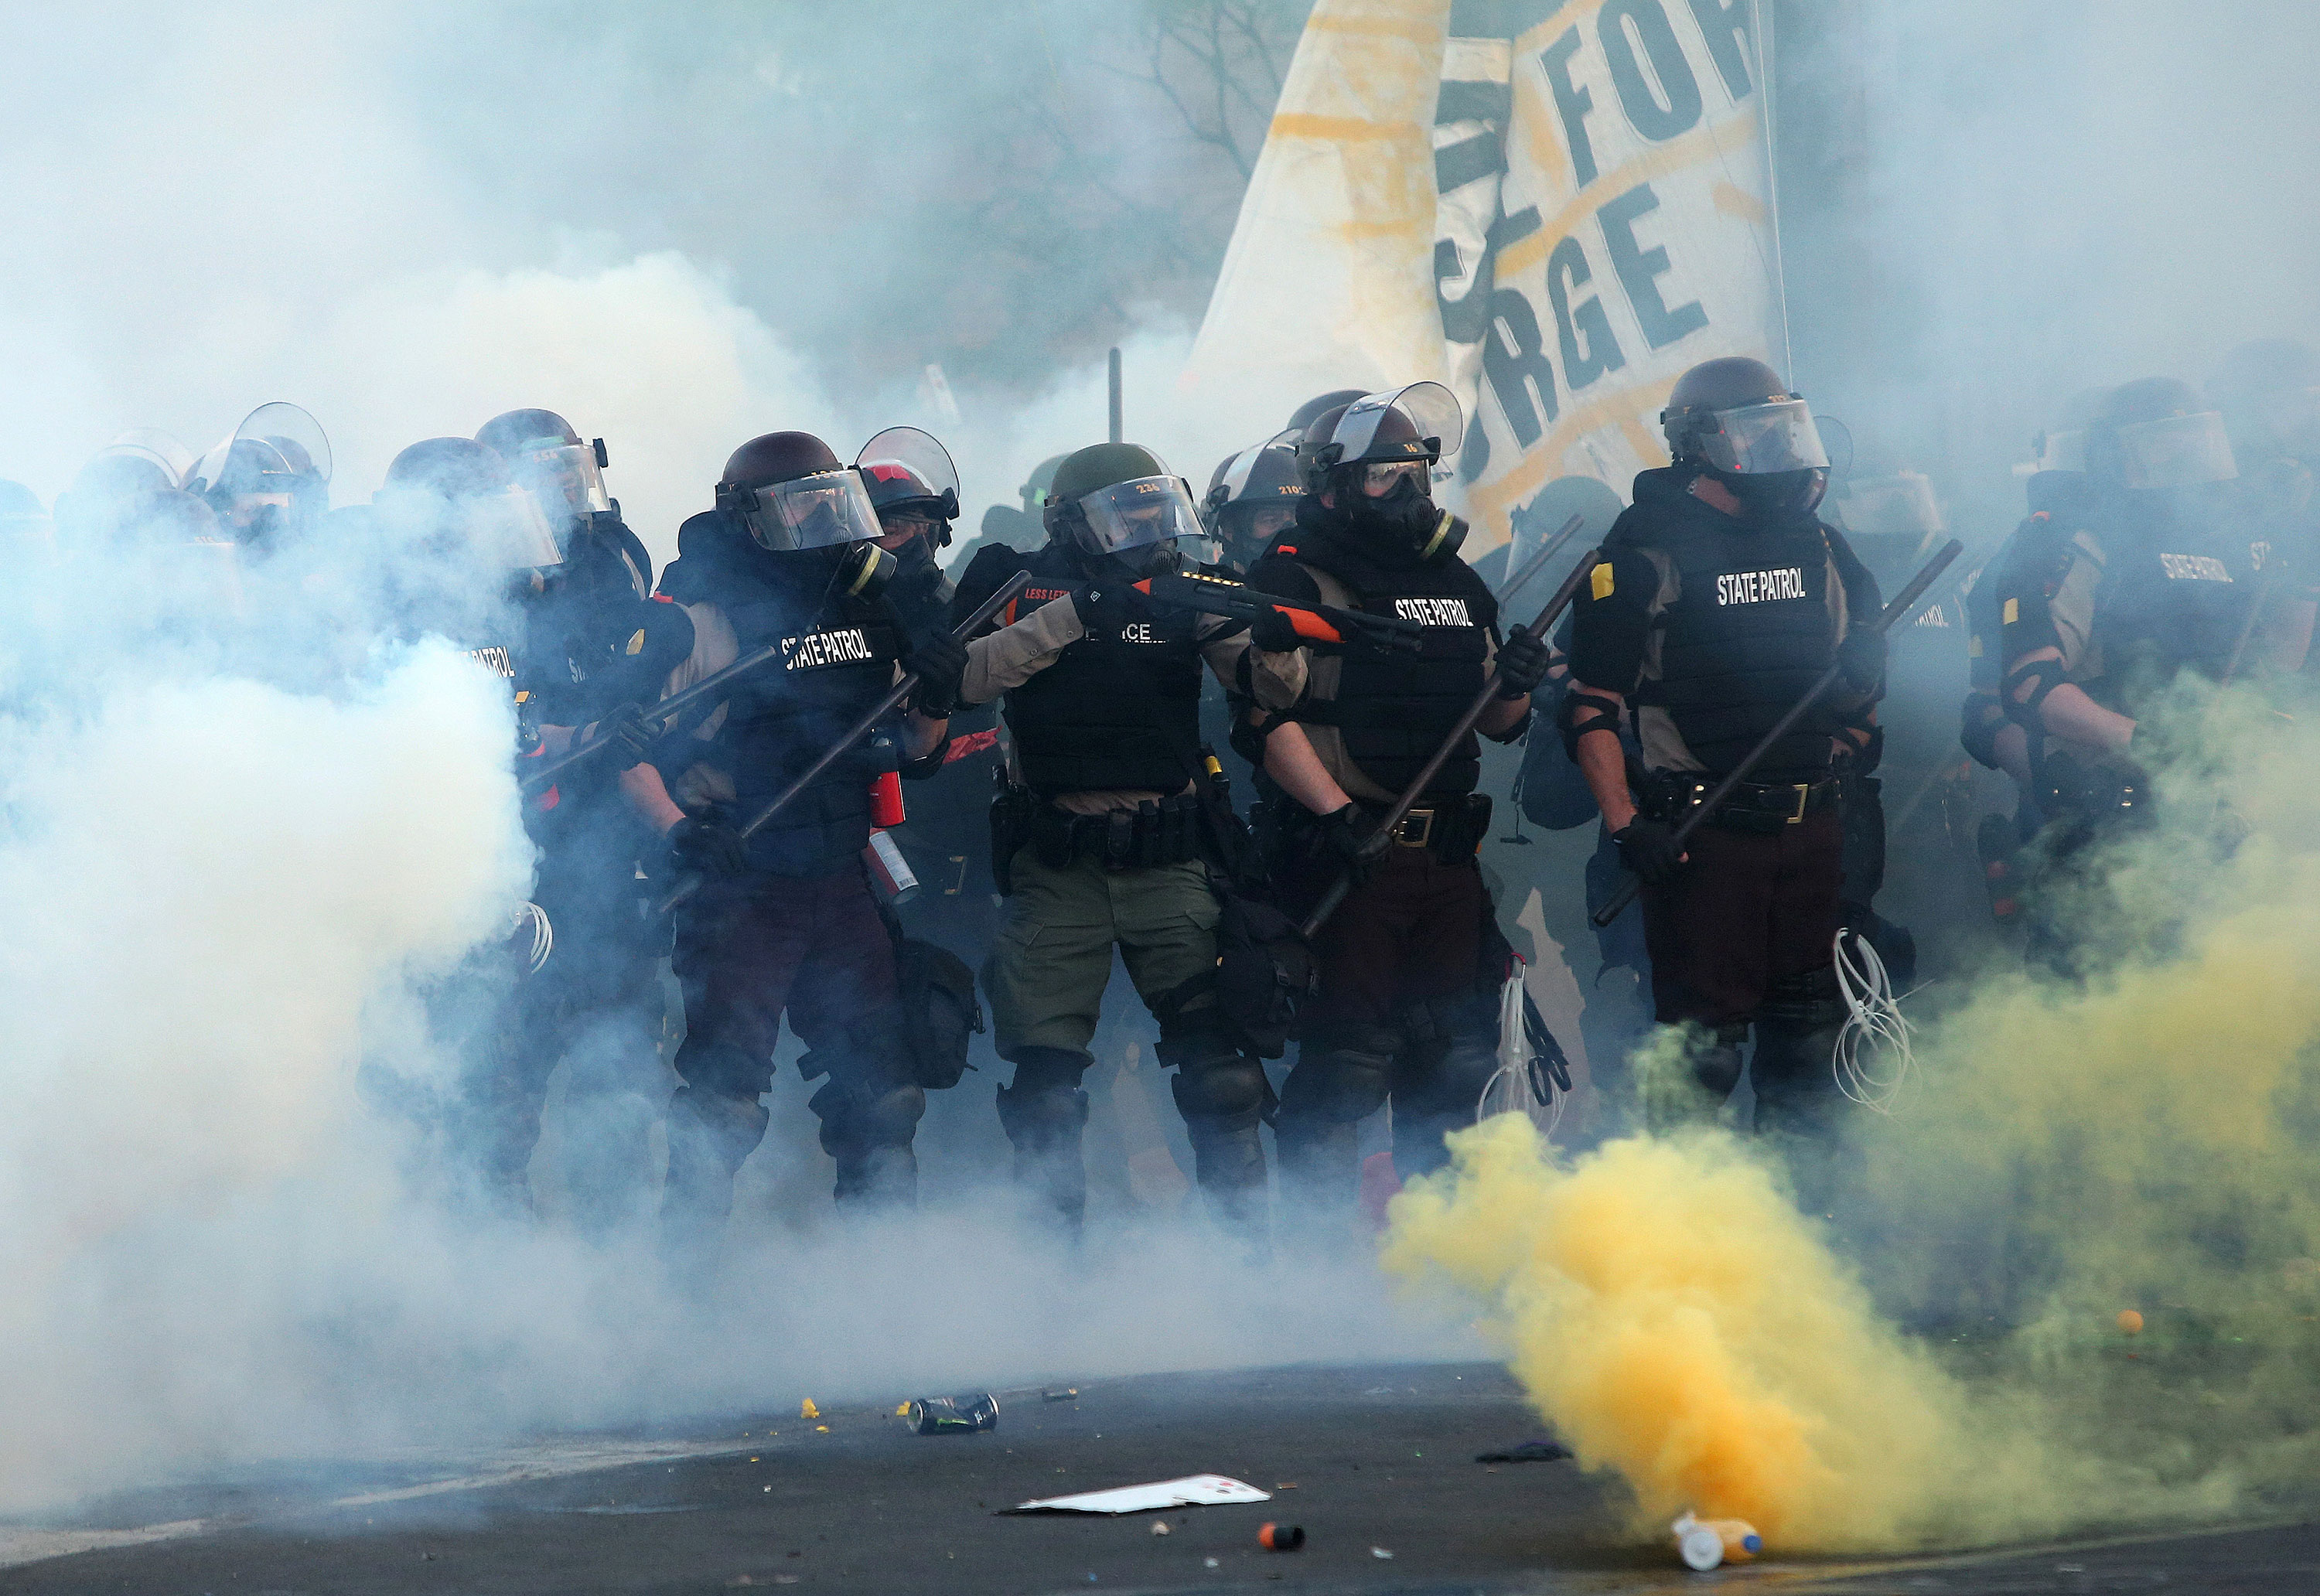 Police brutality prompted the protests. In some cities, the police response only proved the protesters' point